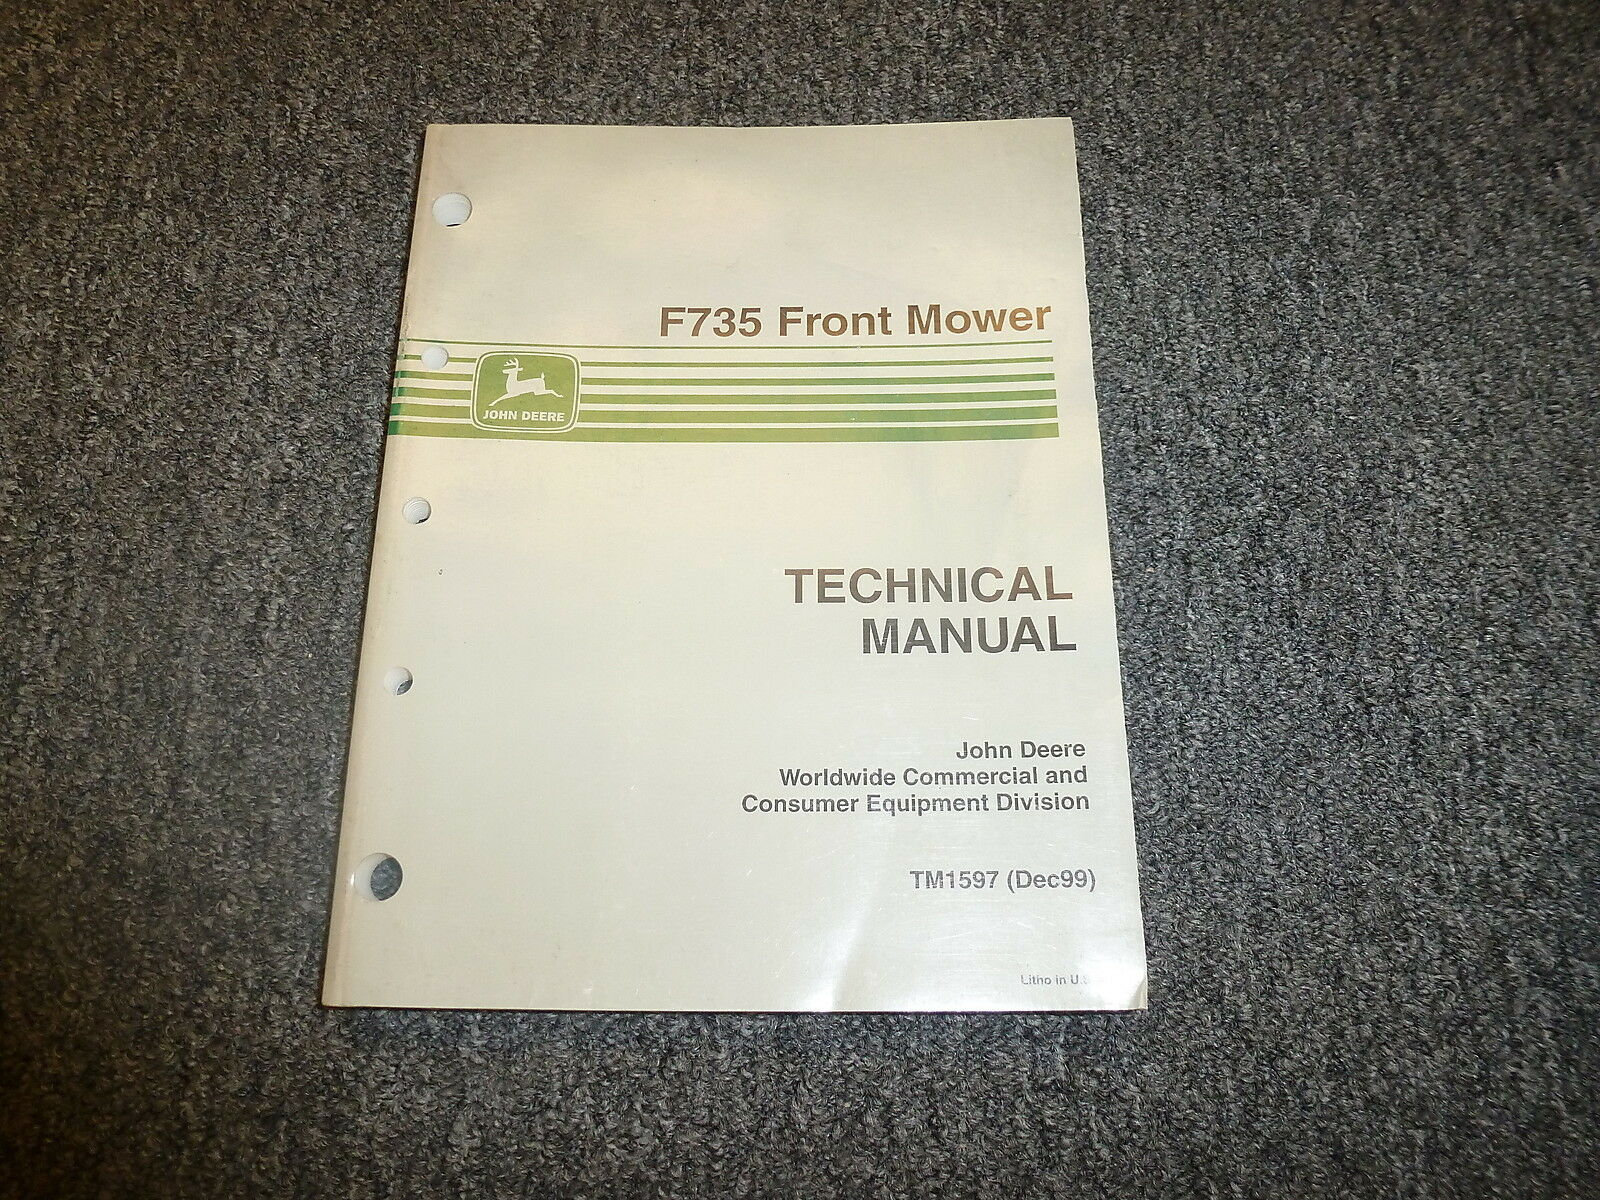 John Deere F735 Front Mower Technical Repair Shop Service Manual TM1597 1  of 1Only 1 available ...